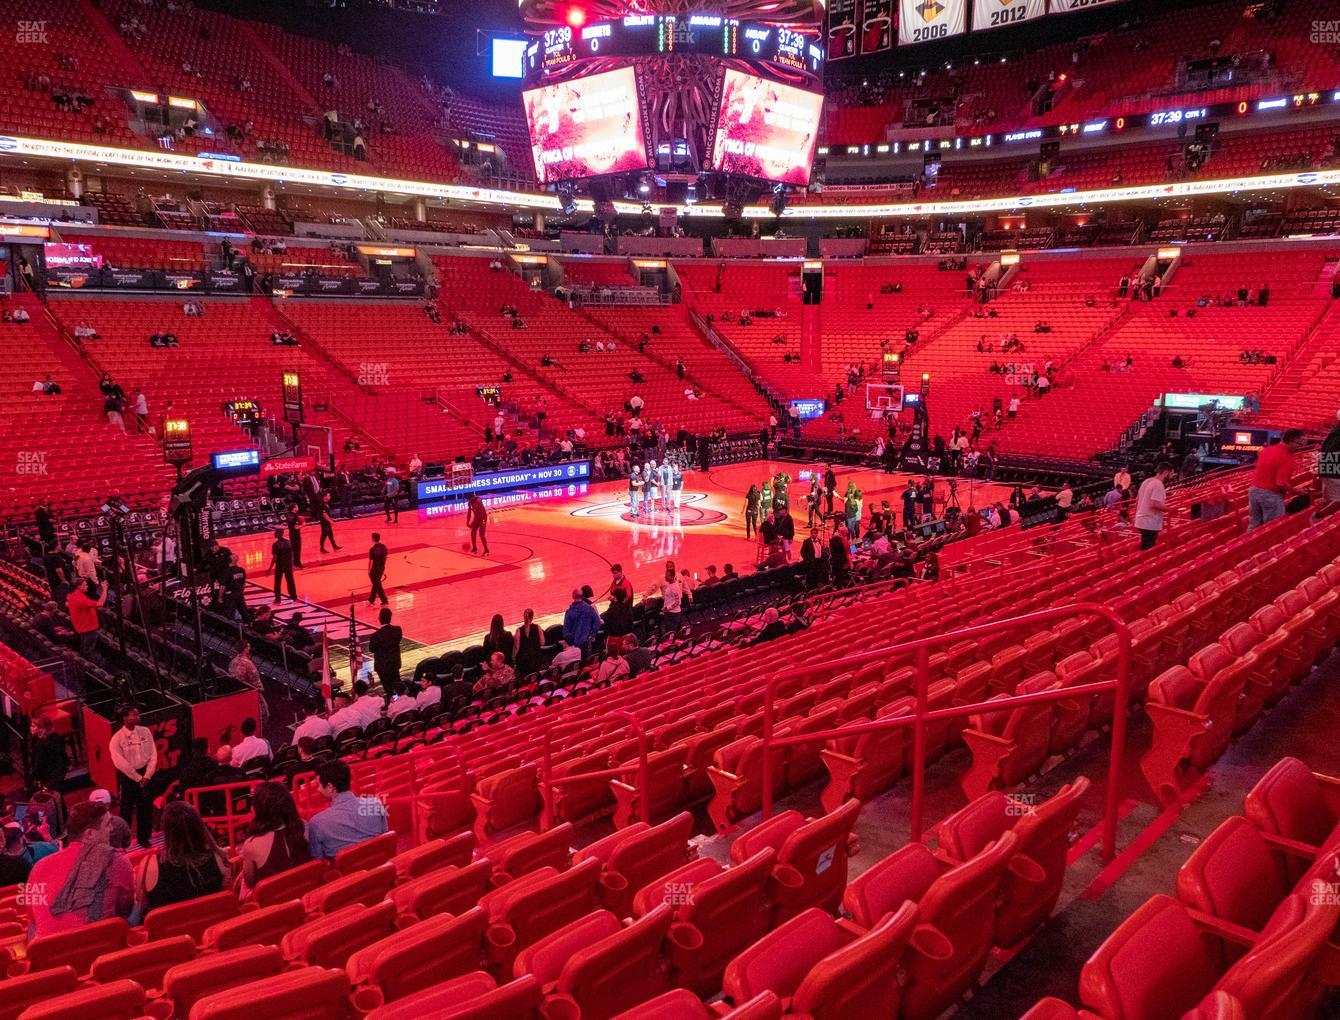 american airlines arena section 121 seat views   seatgeek